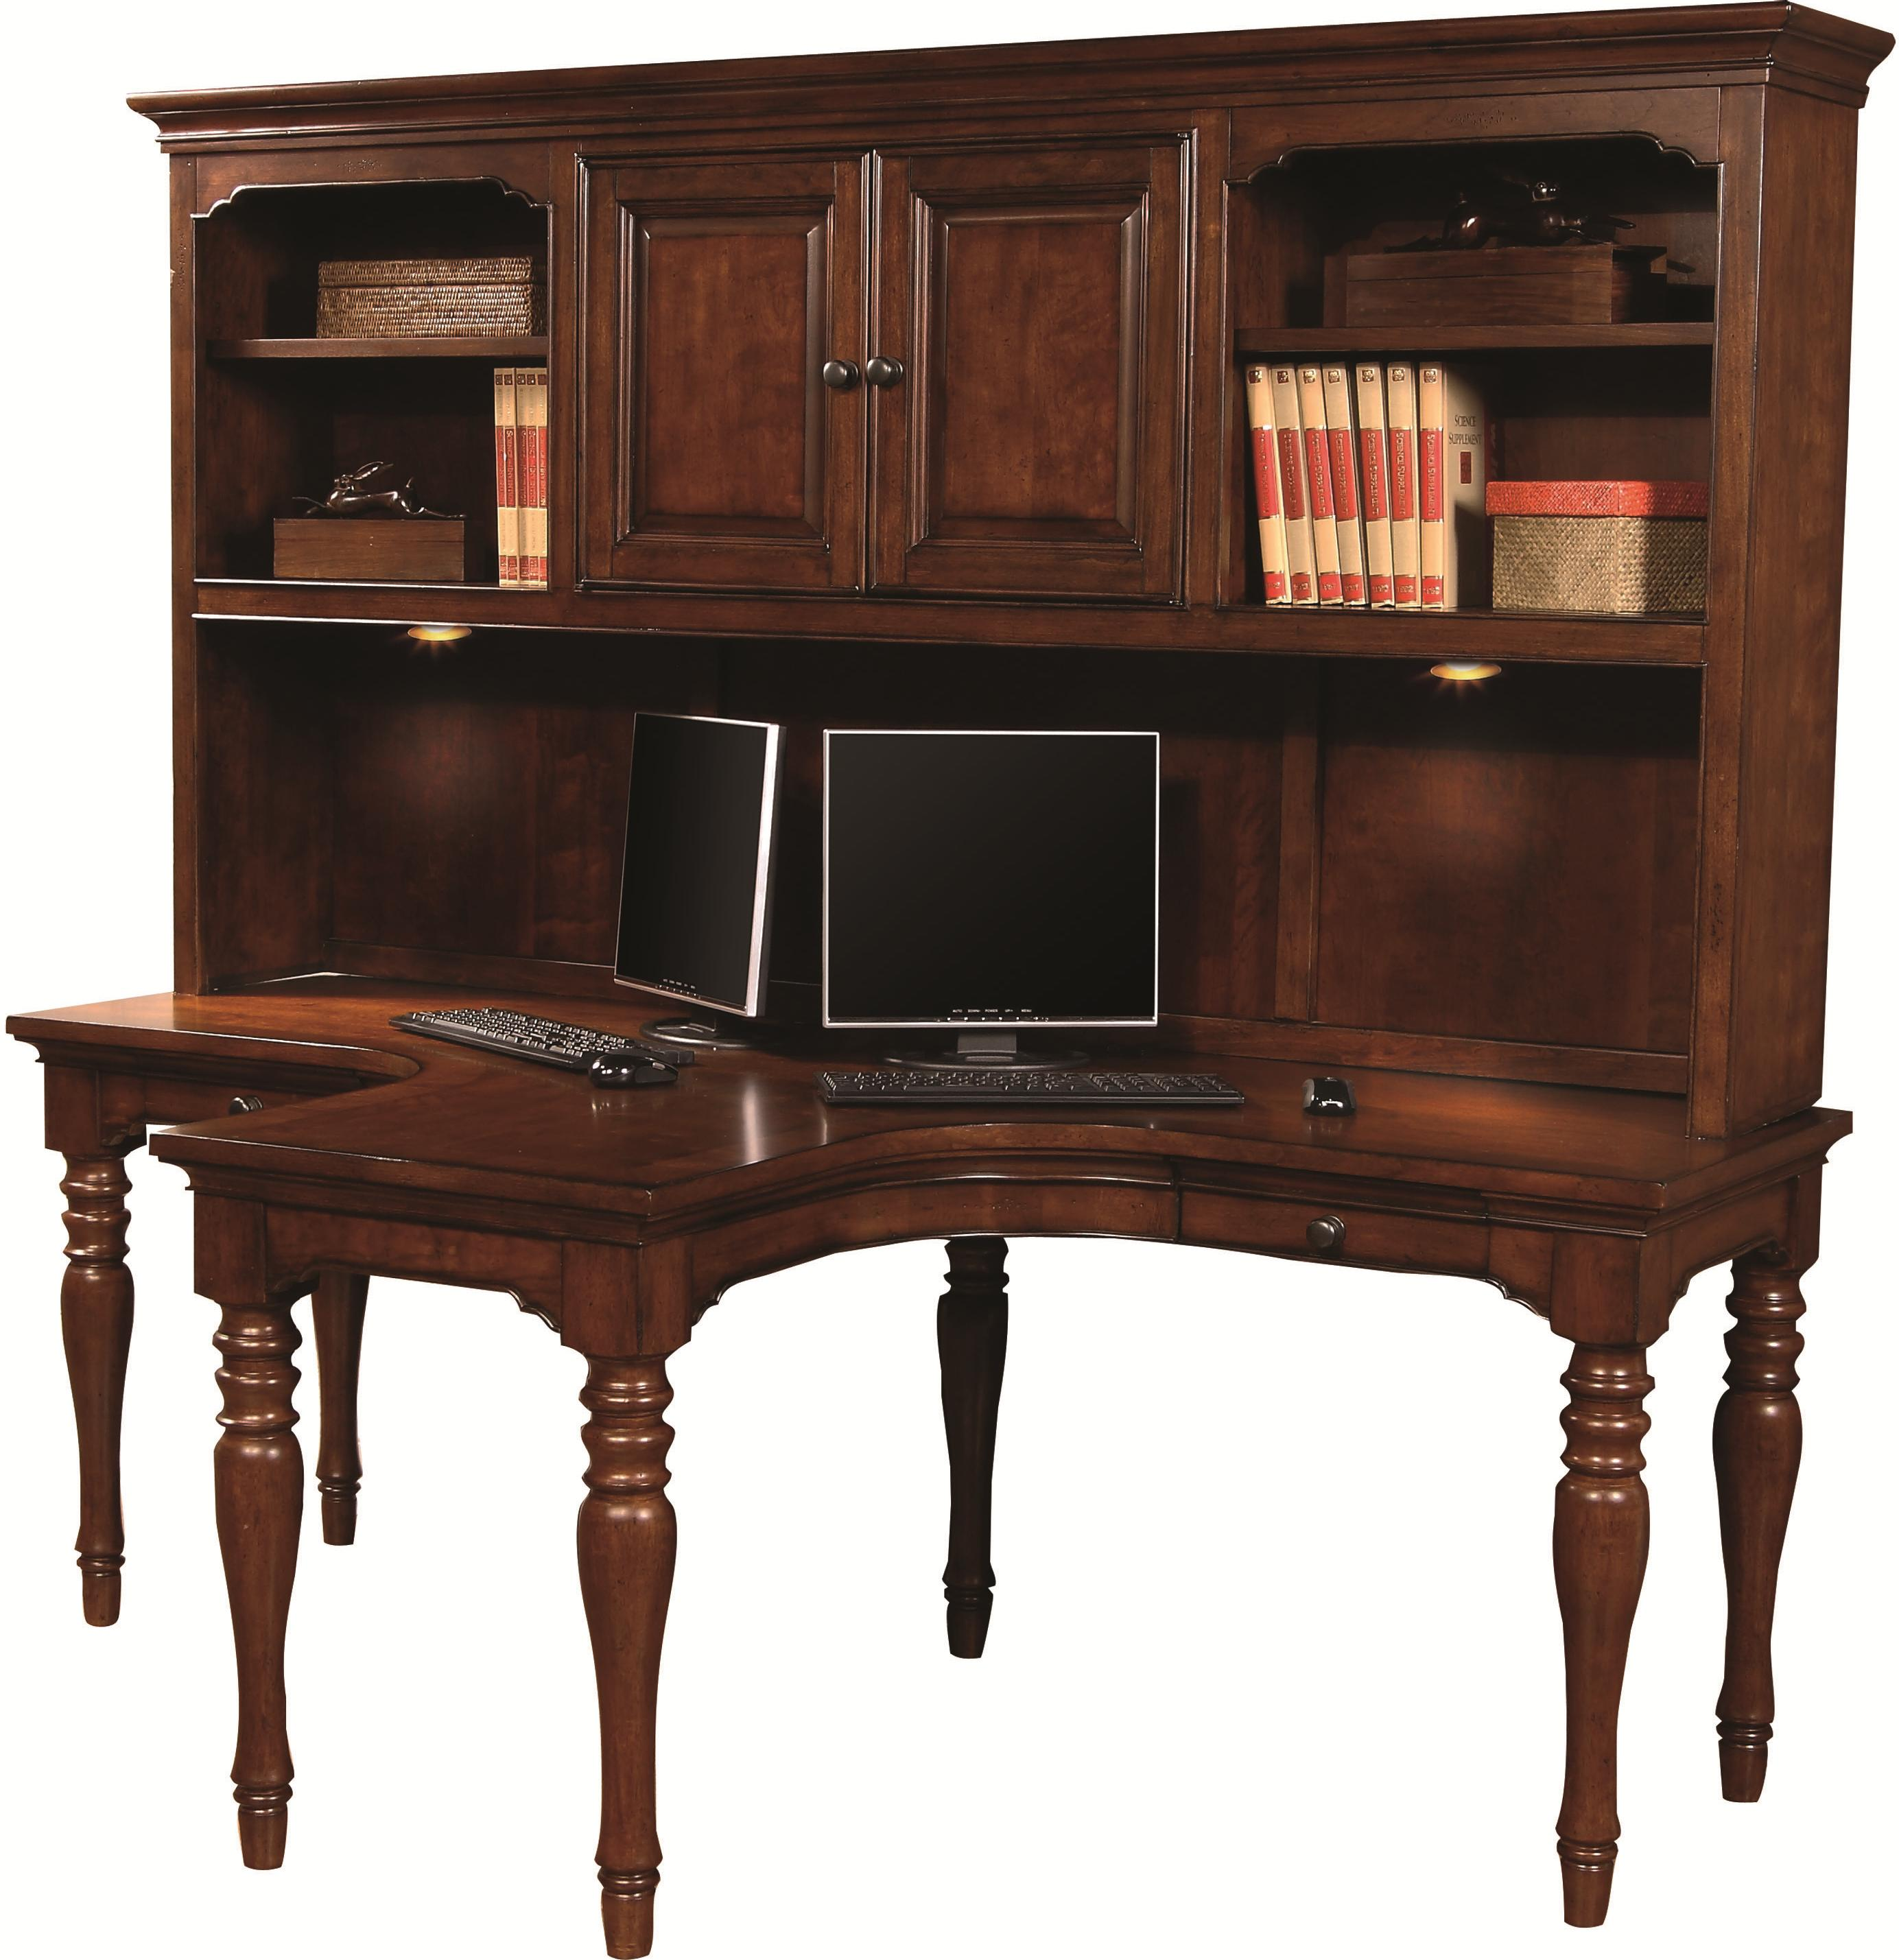 Aspenhome Villager Desk and Hutch - Item Number: I20-380-CHY+380H